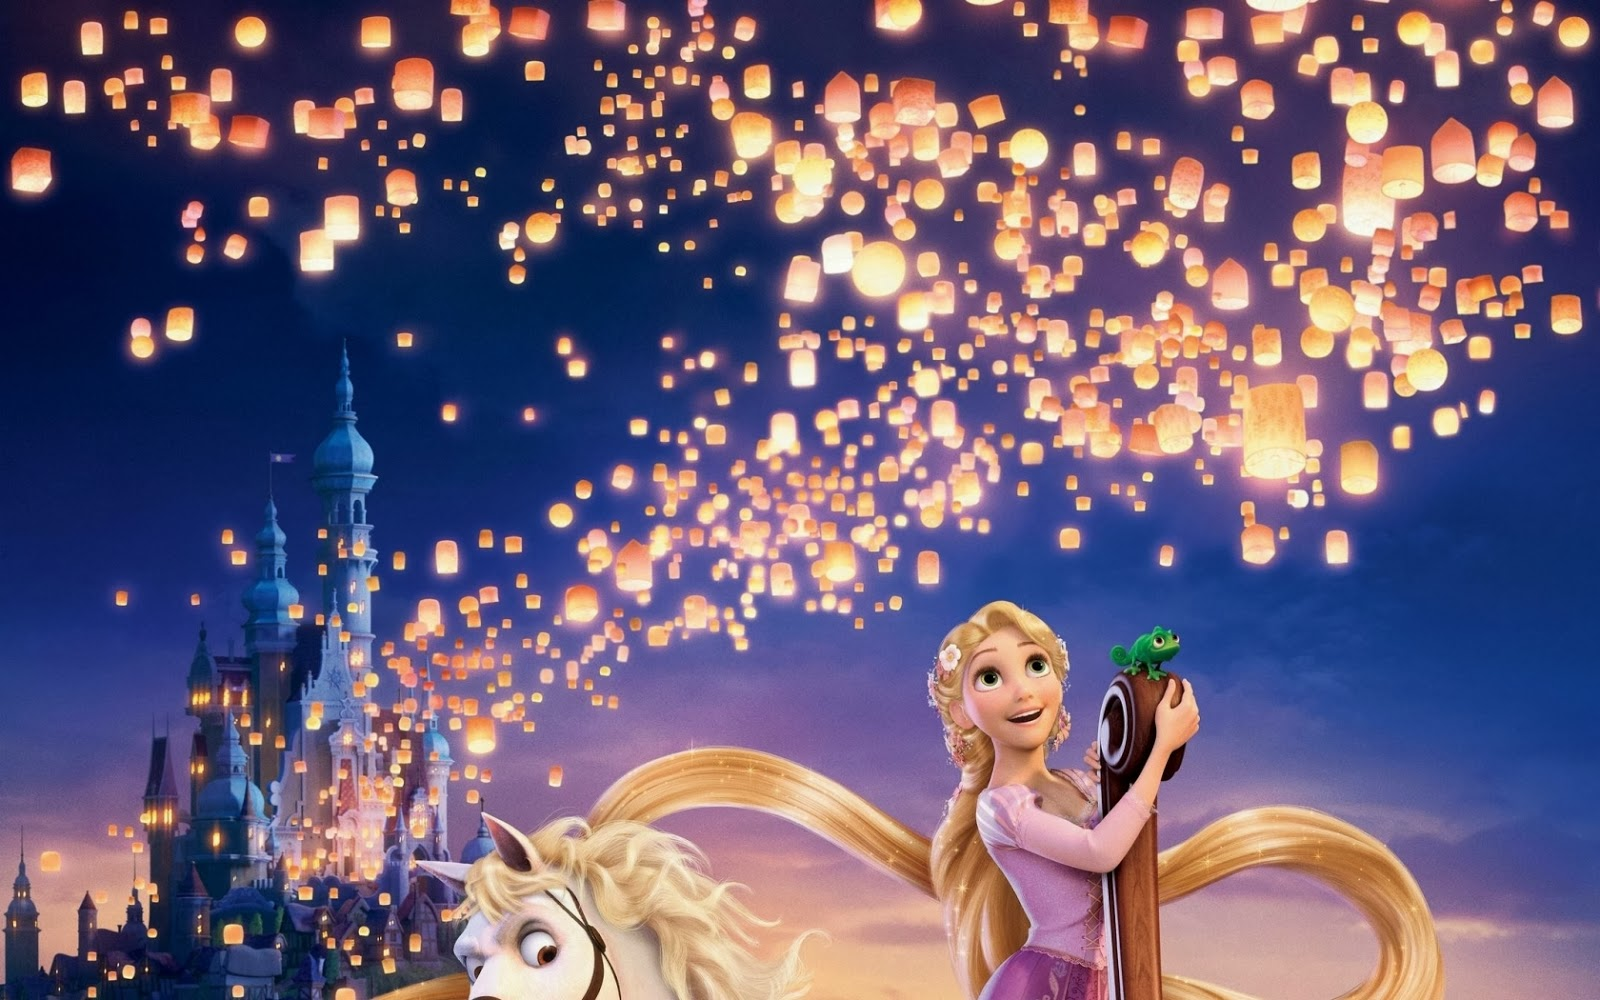 Tangled Rapunzel HD Wallpapers Download HD WALLPAERS 4U FREE 1600x1000